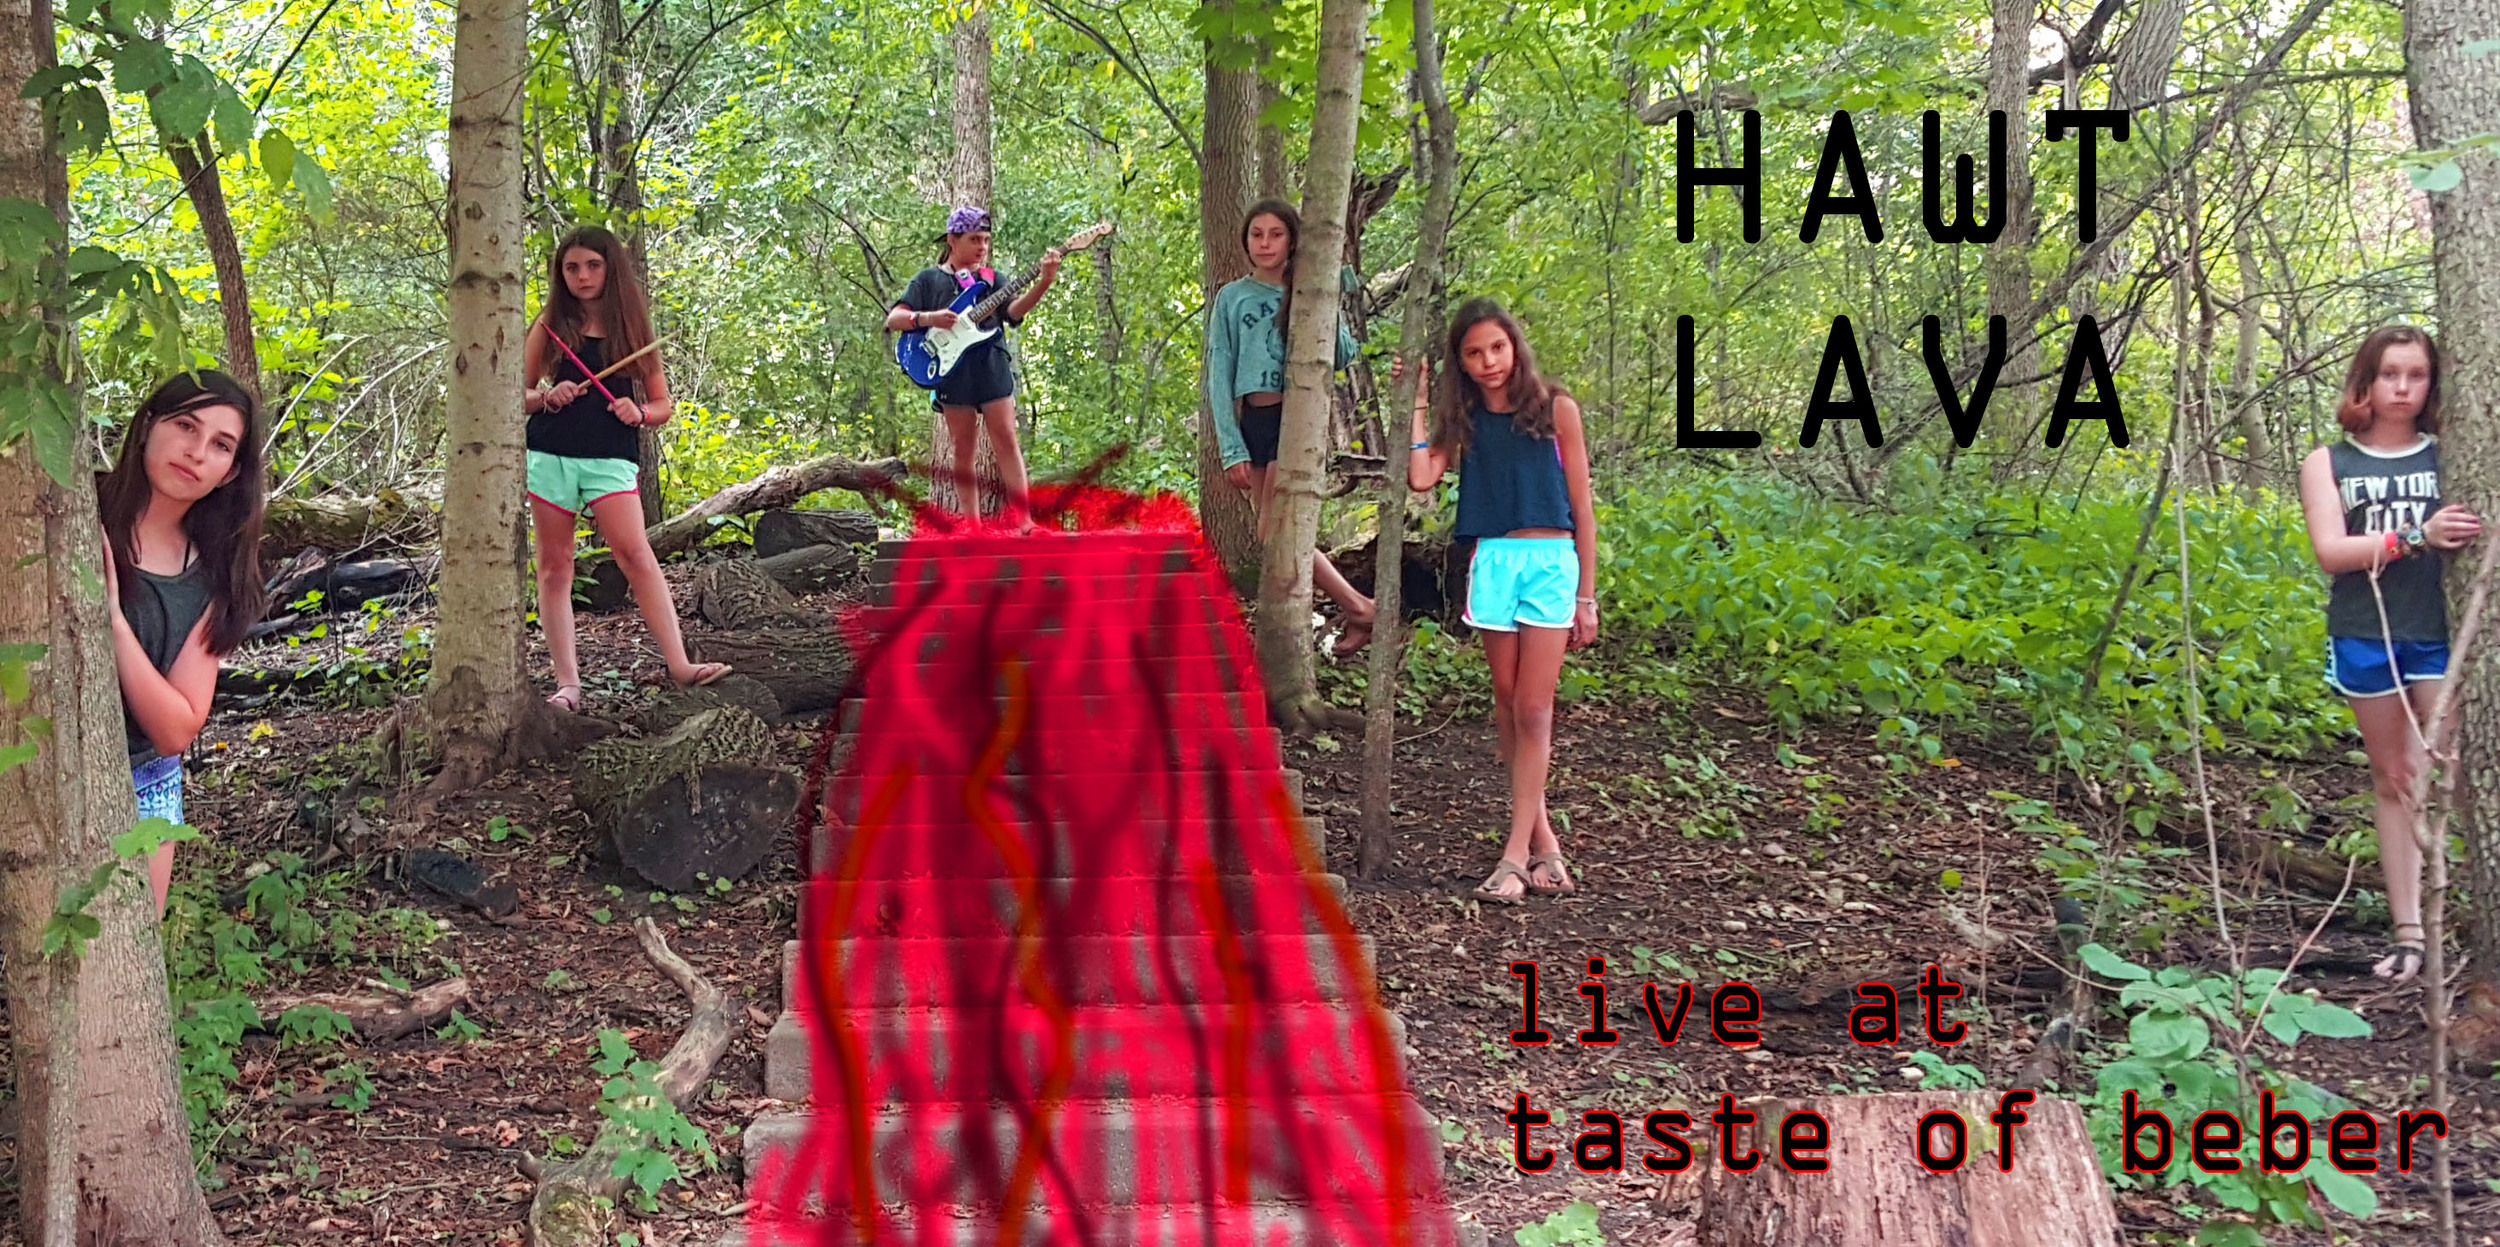 The Kesher band Hawt Lava was on fire this session, recording a great studio track, and rocking the Taste of Beber festival on the island! Check out their recording, and some pictures from the festival appearance!